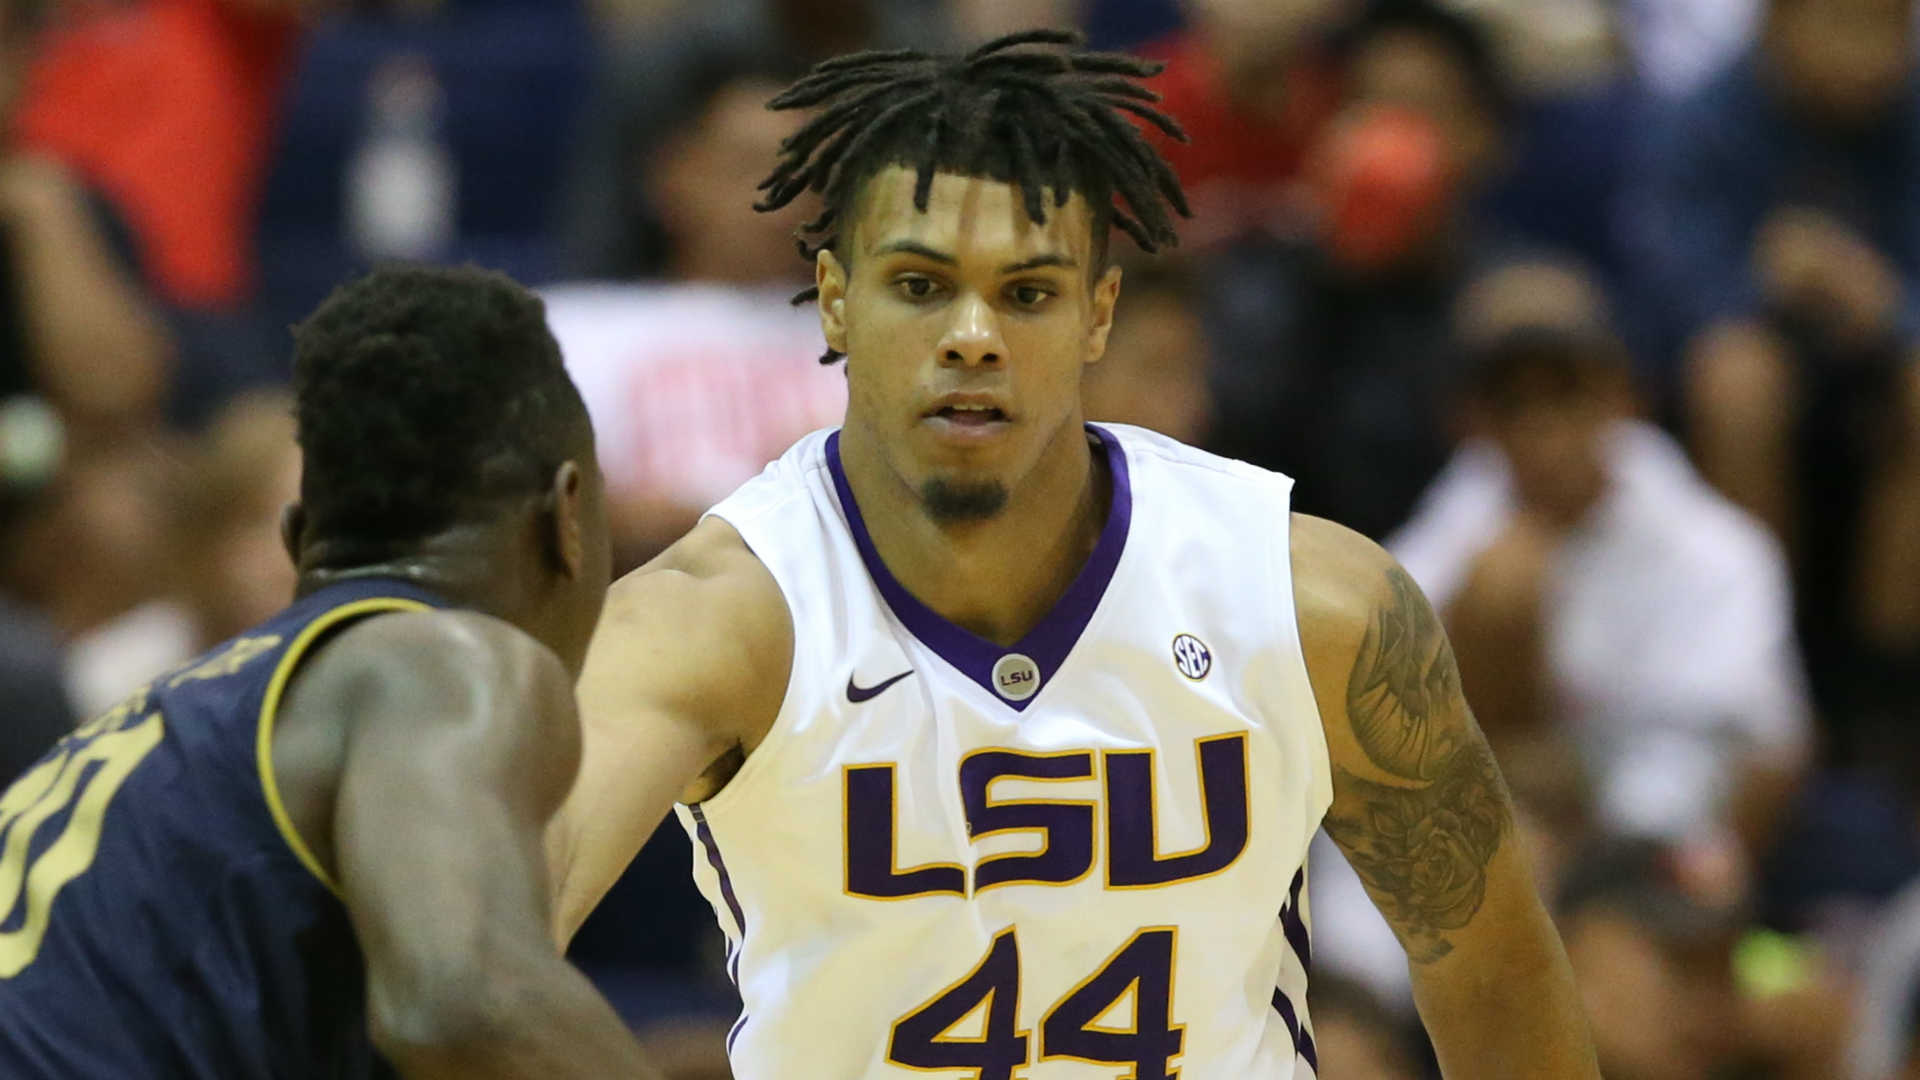 Video shows fight before fatal shooting of LSU basketball player Wayde Sims